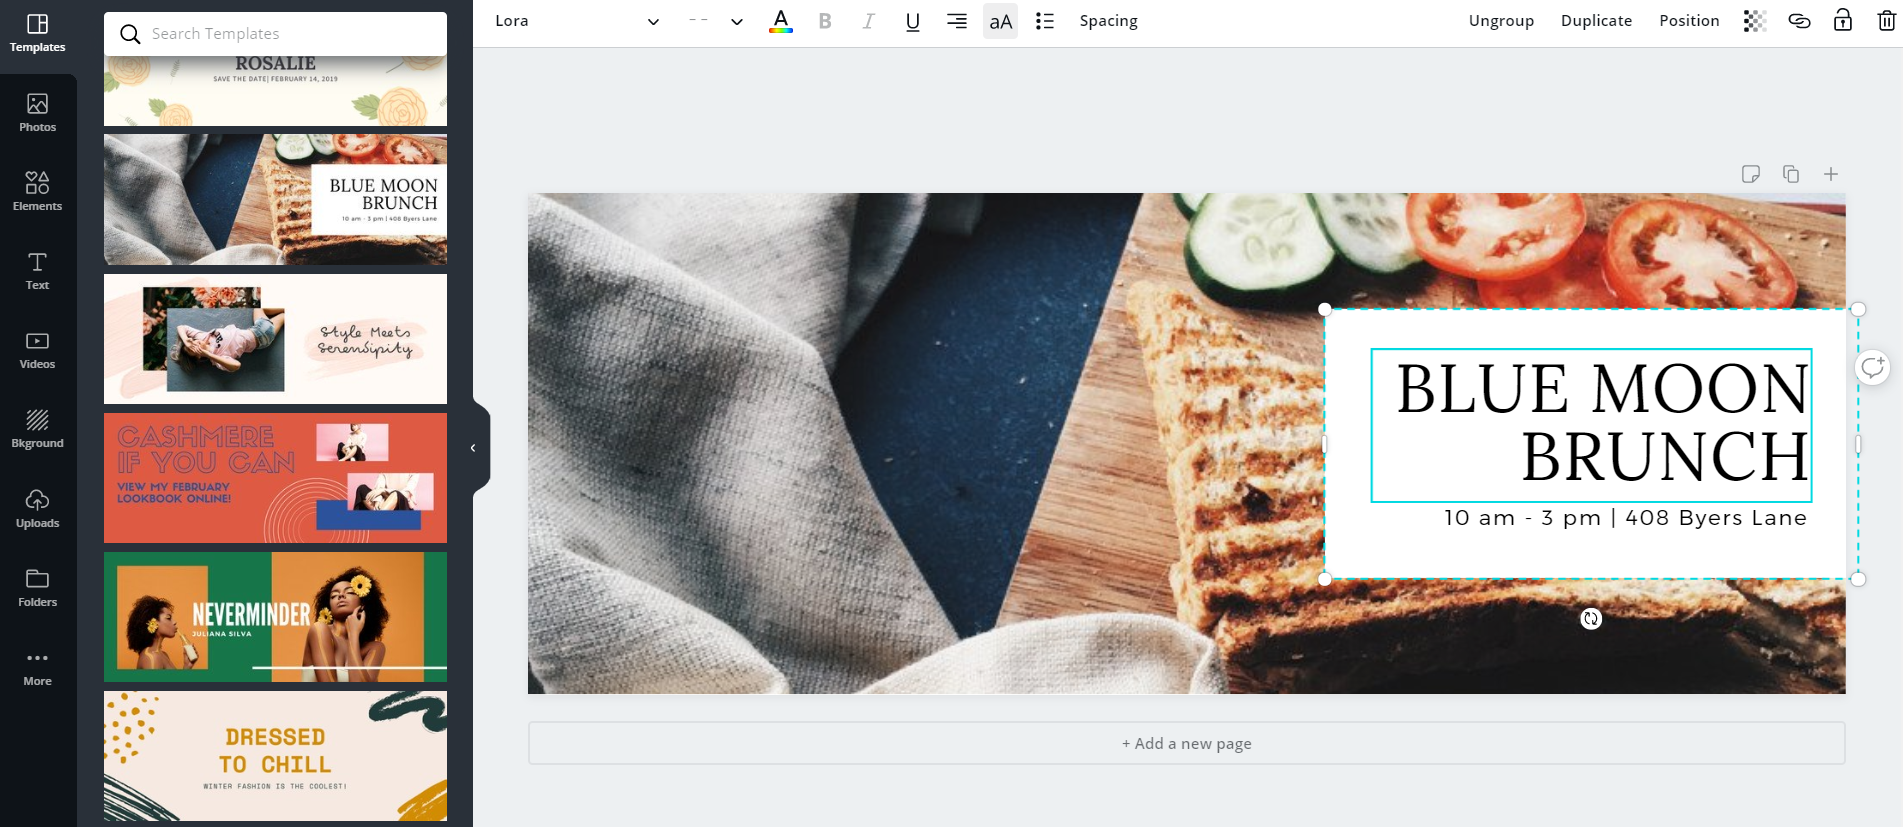 Canva allows you to create cover images for your Facebook business page in minutes